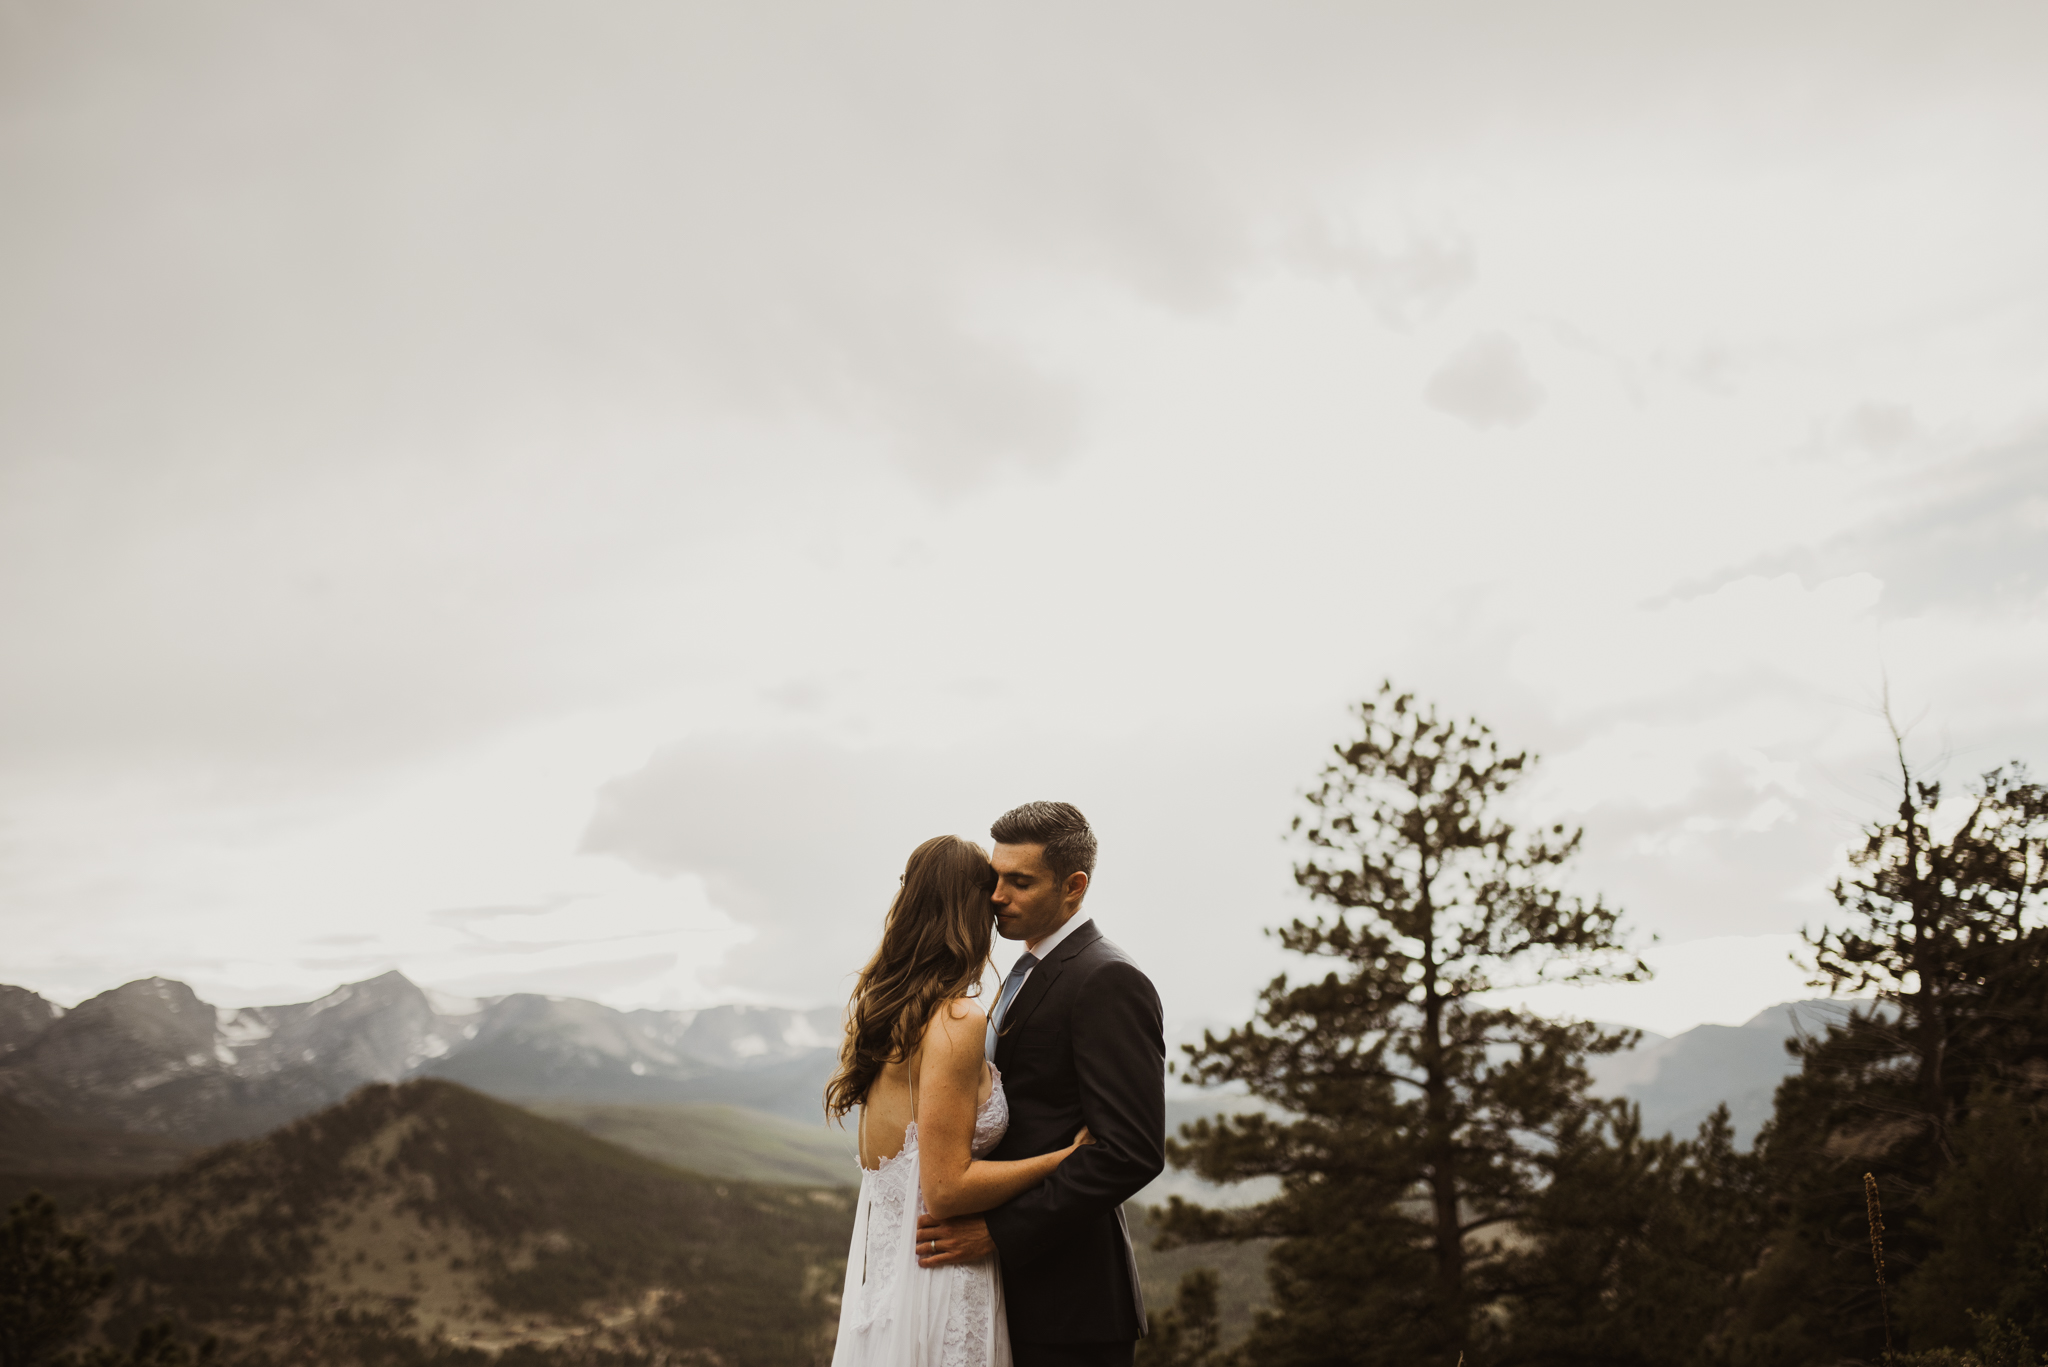 ©Isaiah + Taylor Photography - Estes National Park Adventure Elopement, Colorado Rockies-116.jpg